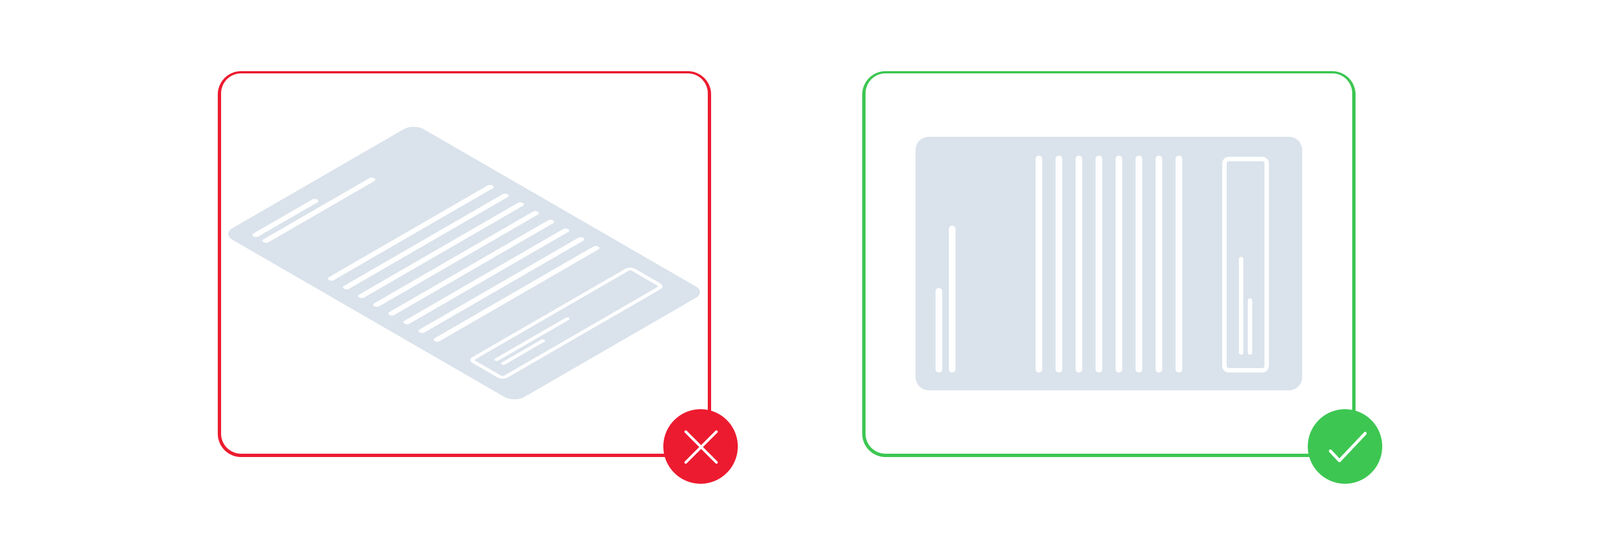 Make sure the scan/photo of your document is straight and not distorted